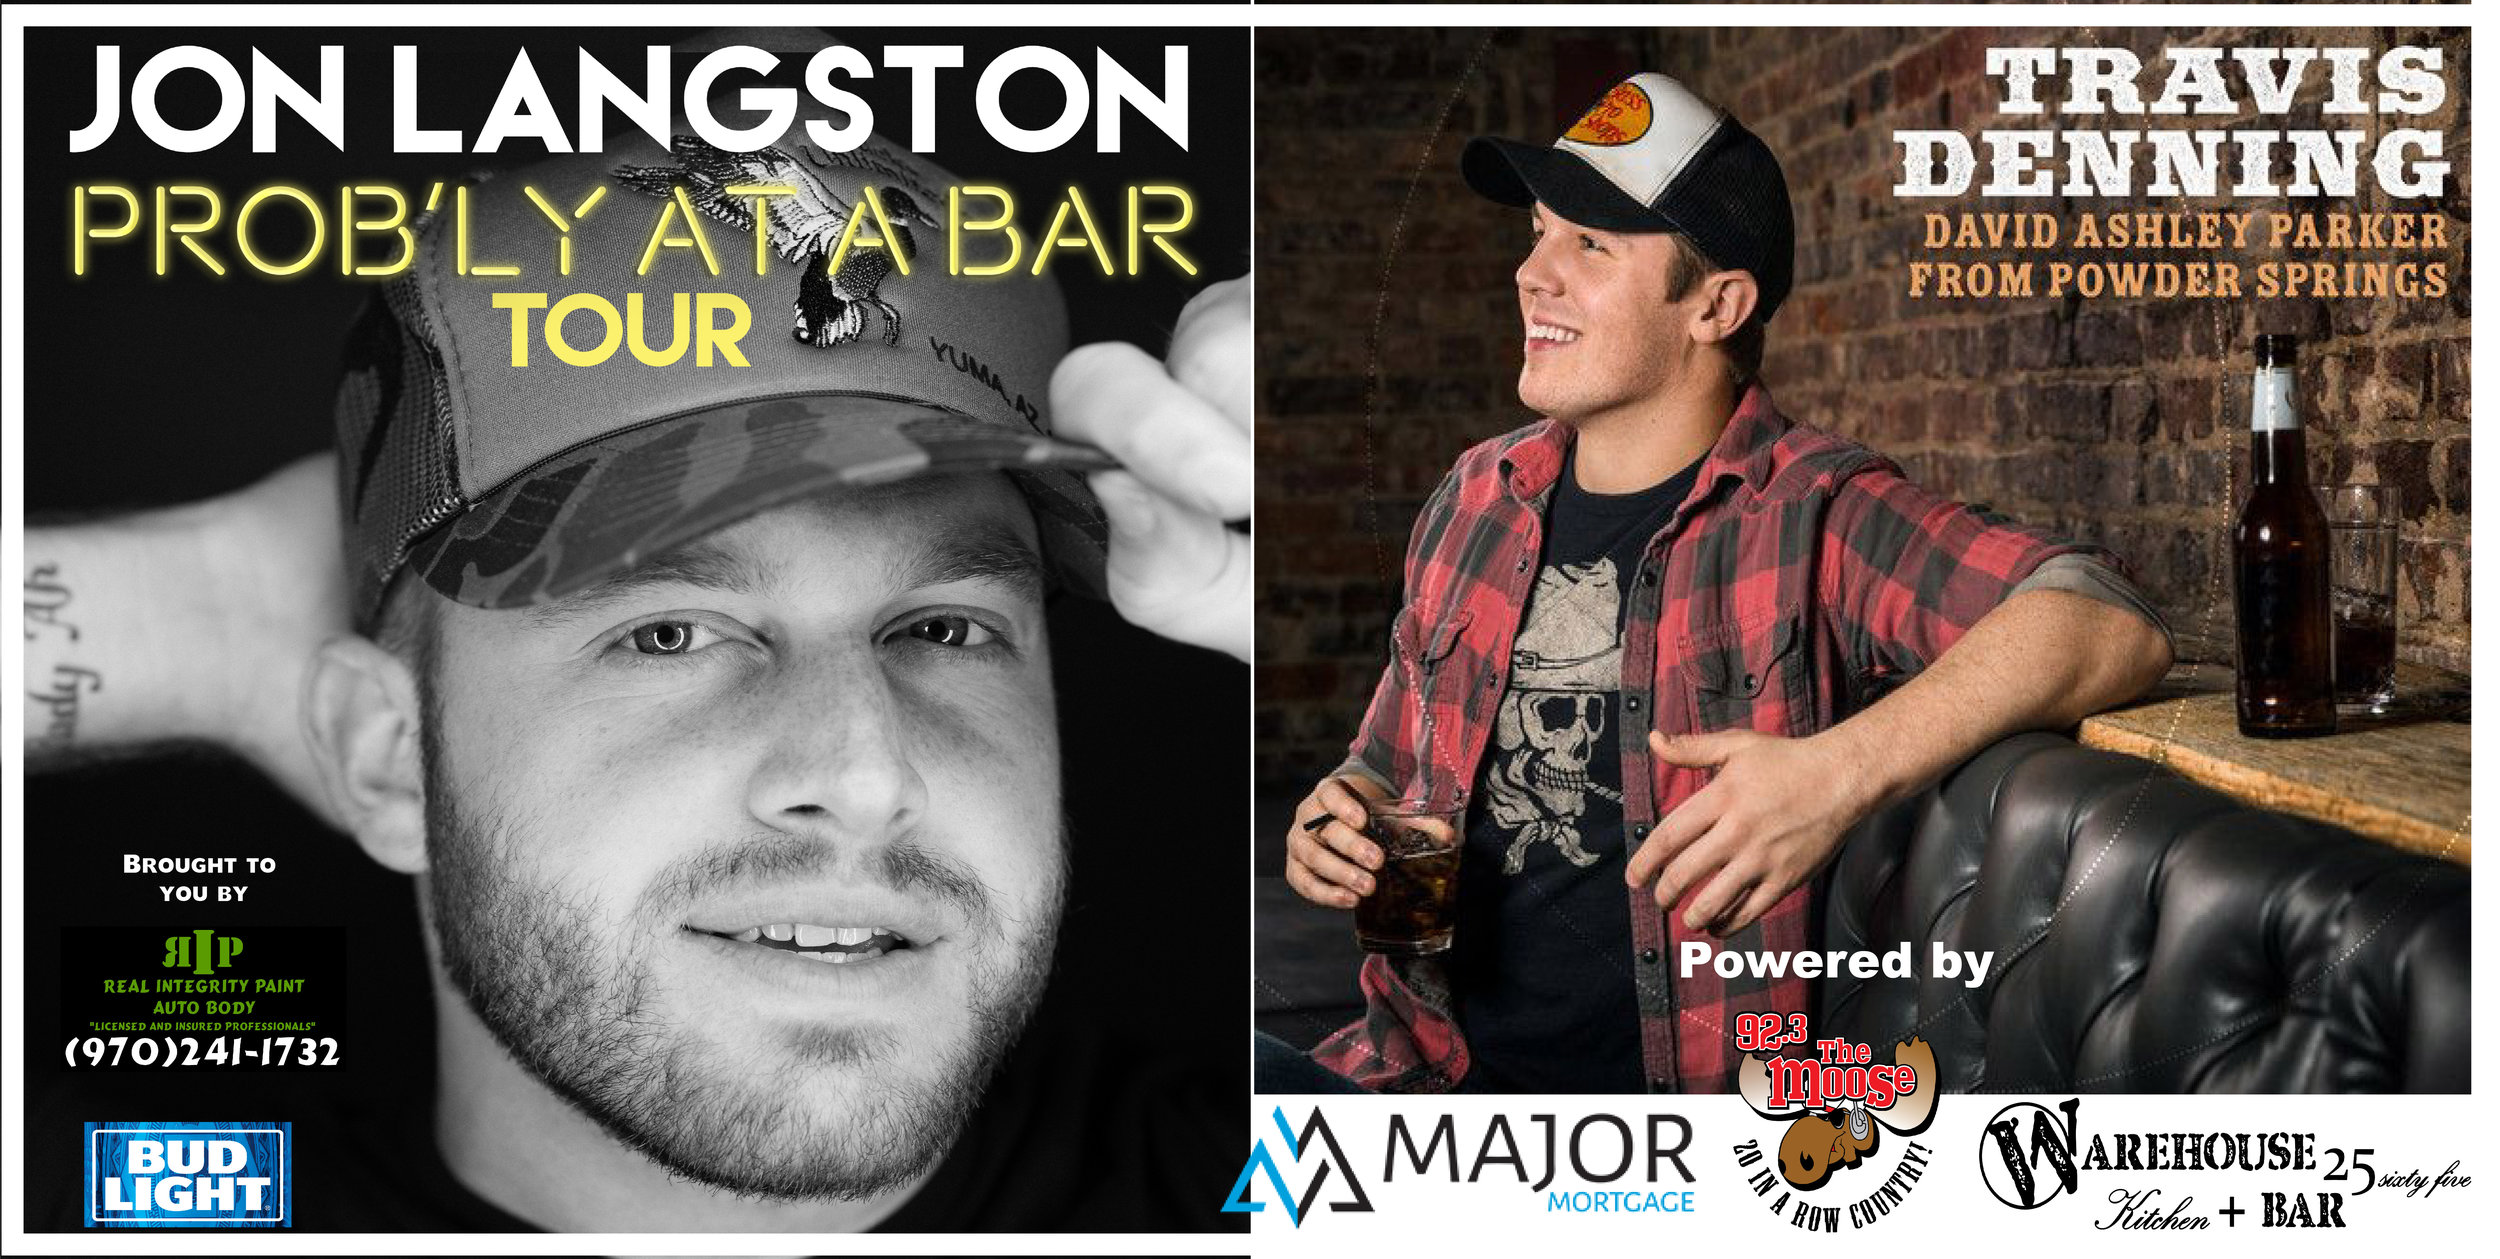 Jon Langston & Travis Denning Set for a killer CO HEADLINE SHOW only at the Warehouse! Western CO let's throw these boys a good ol fashion party!